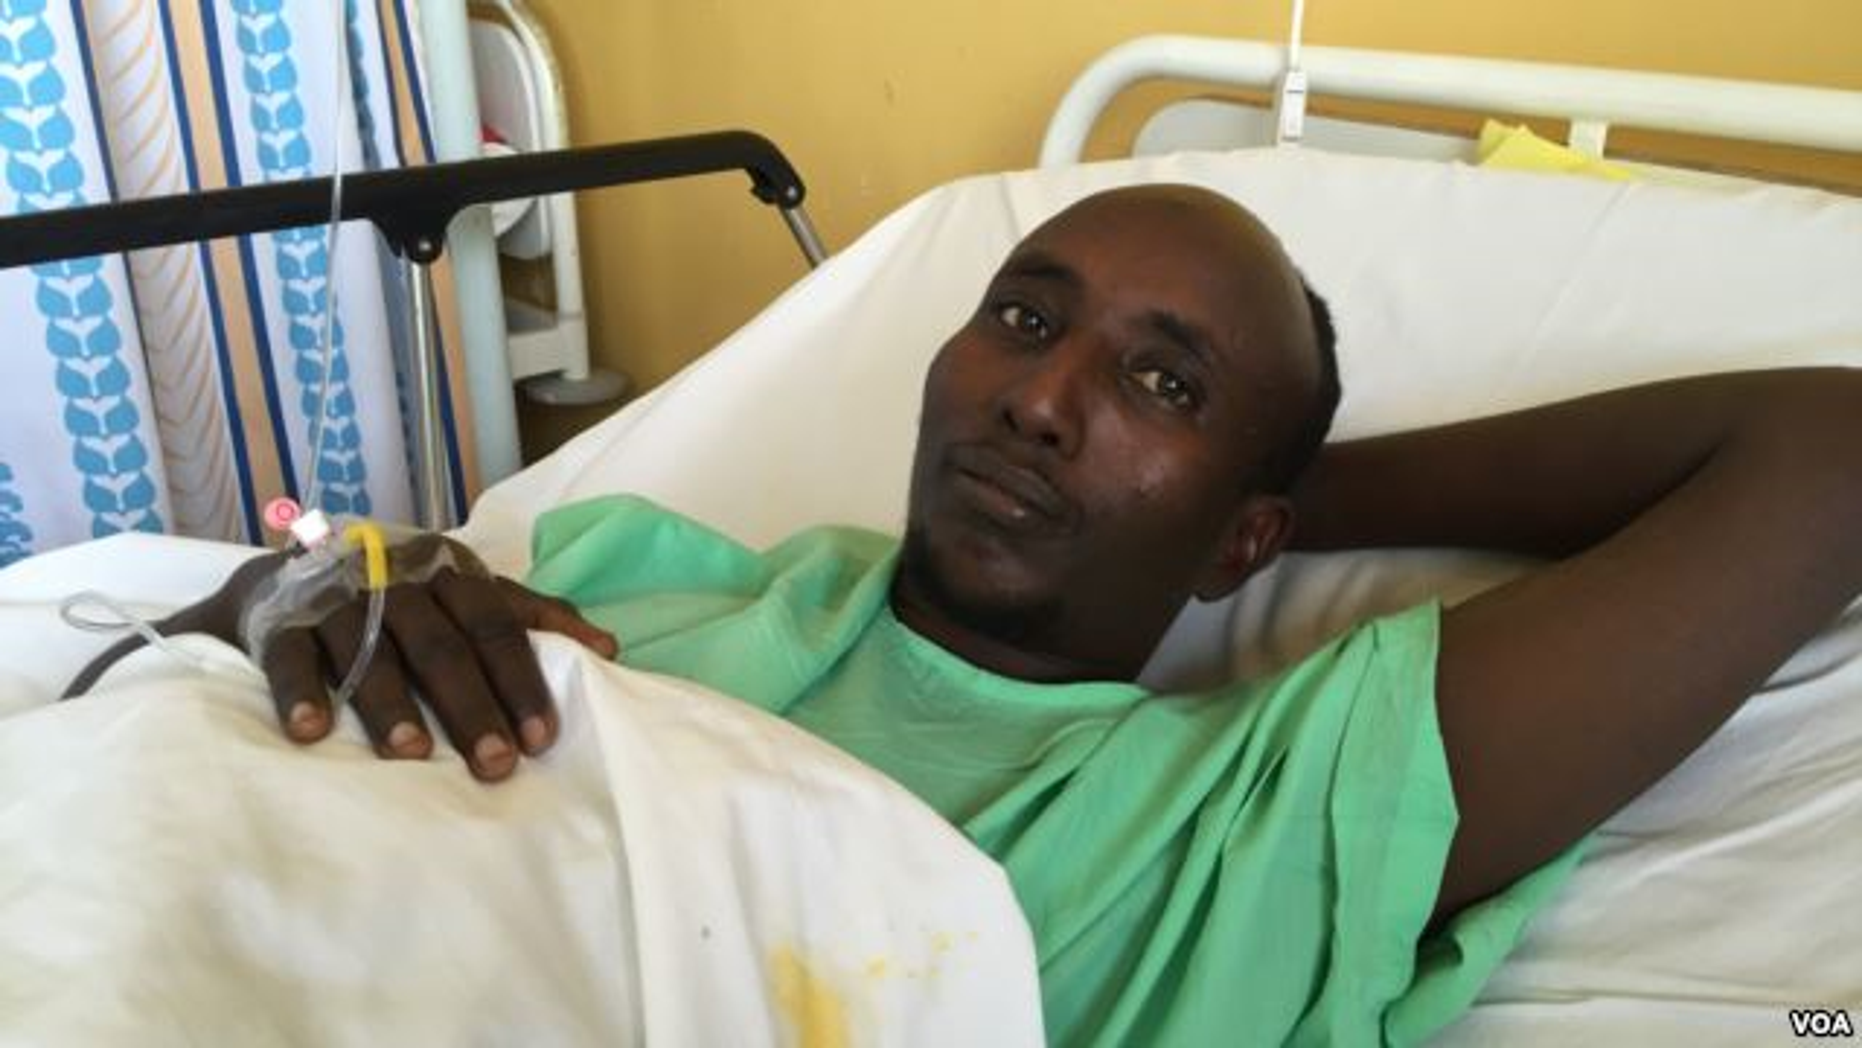 Salah Farah was shot when the bus he was traveling in was attacked by al-Shabaab militants in December 2015. (J. Craig/VOA)